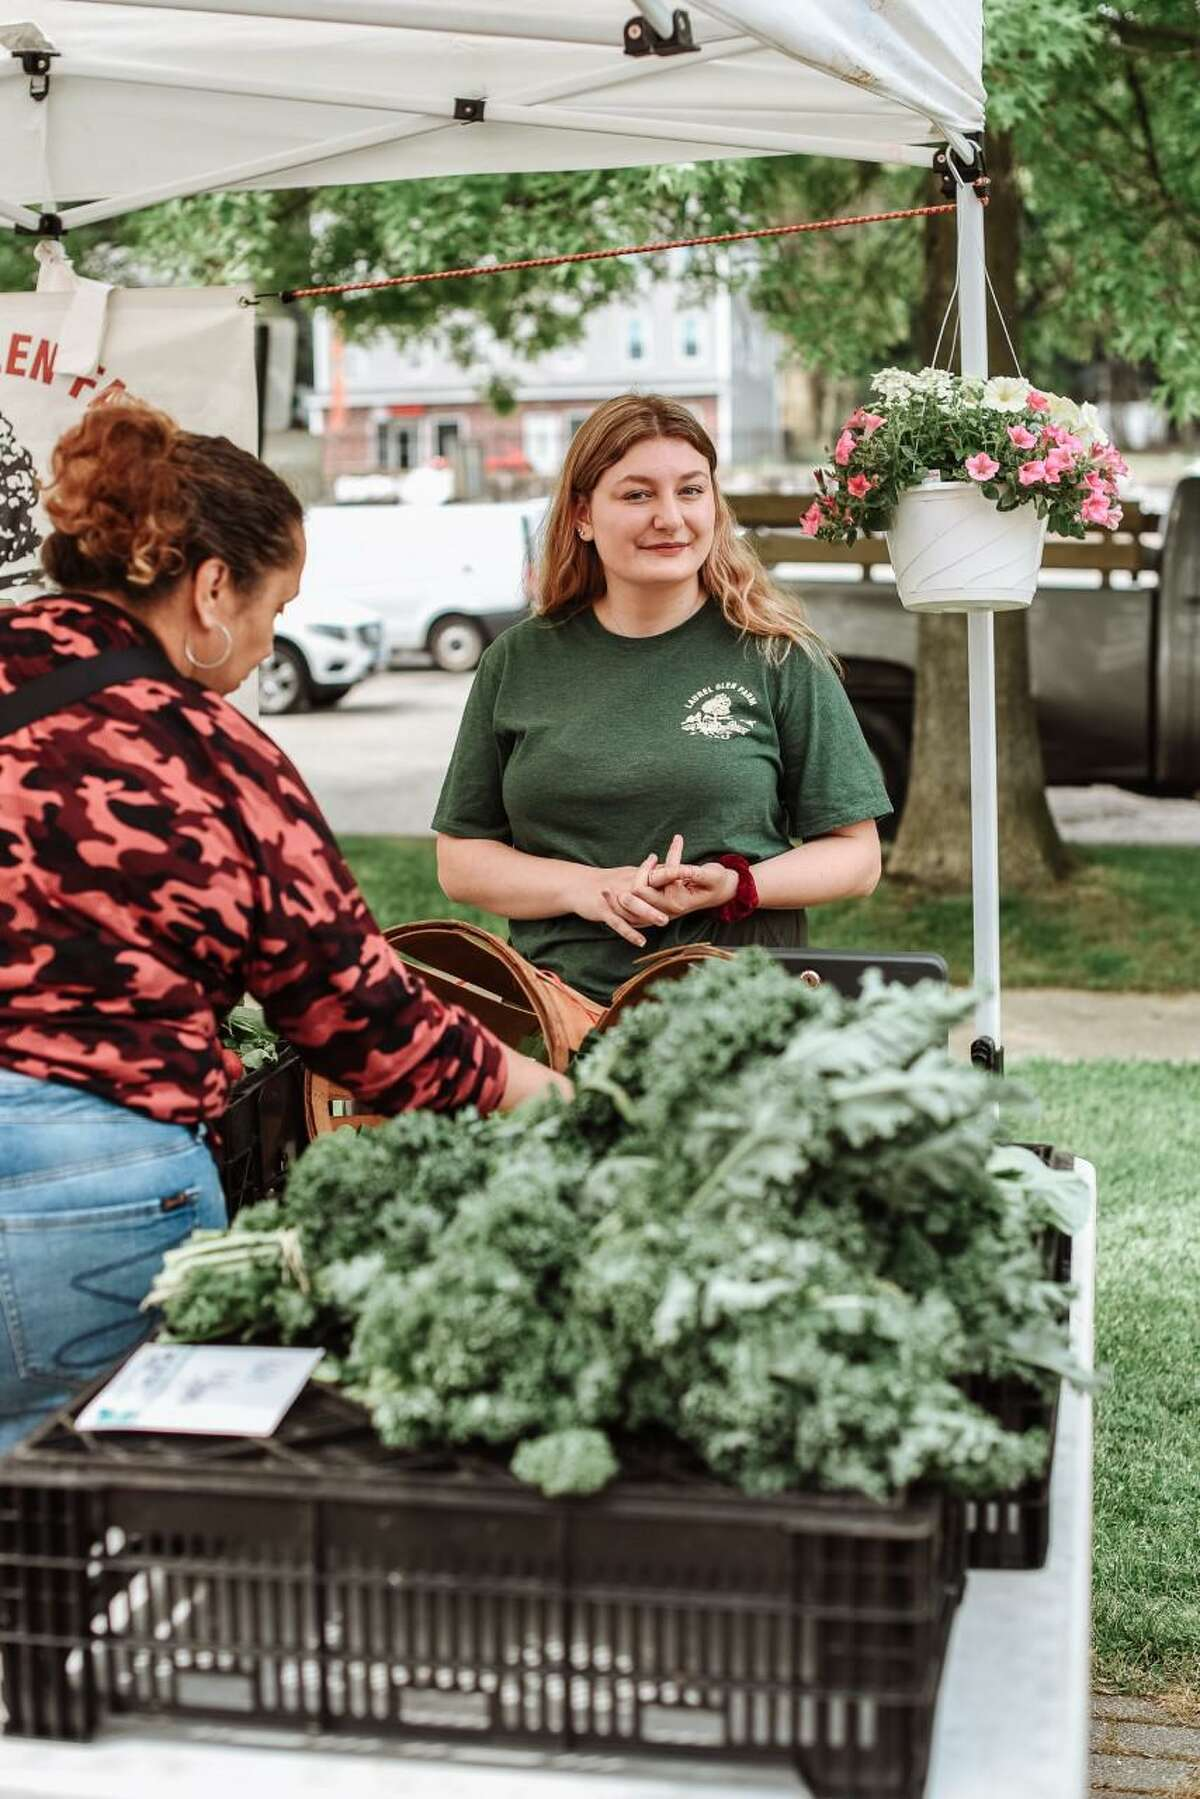 The Shelton Farmer's Market, at 100 Canal St. East in downtown, runs every Saturday from 9 to noon throughout the spring and summer.